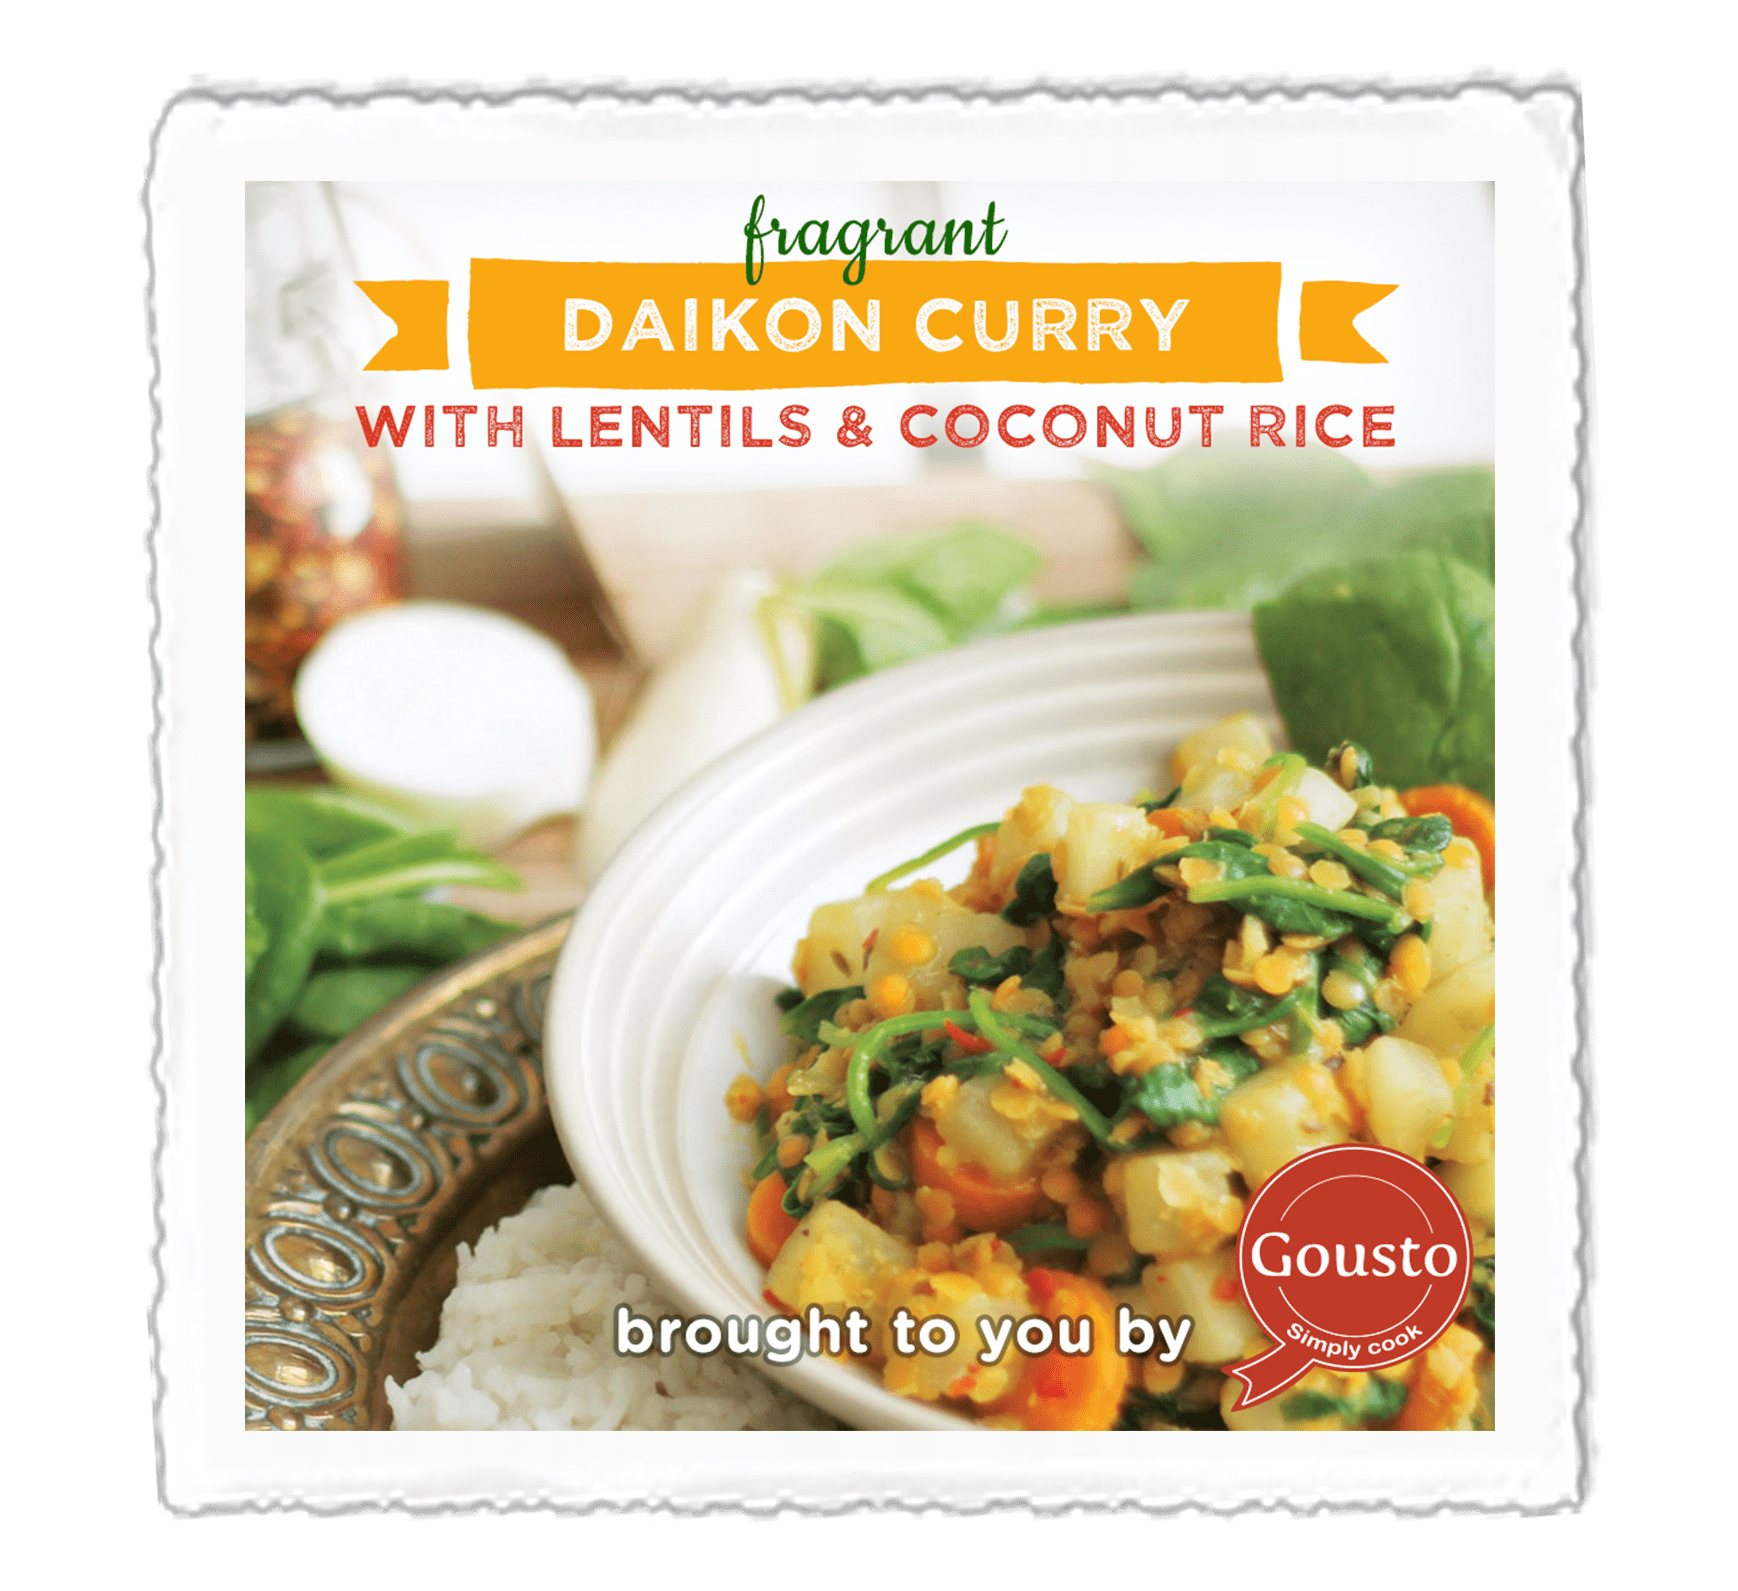 Daikon Curry with Lentils and Coconut Rice